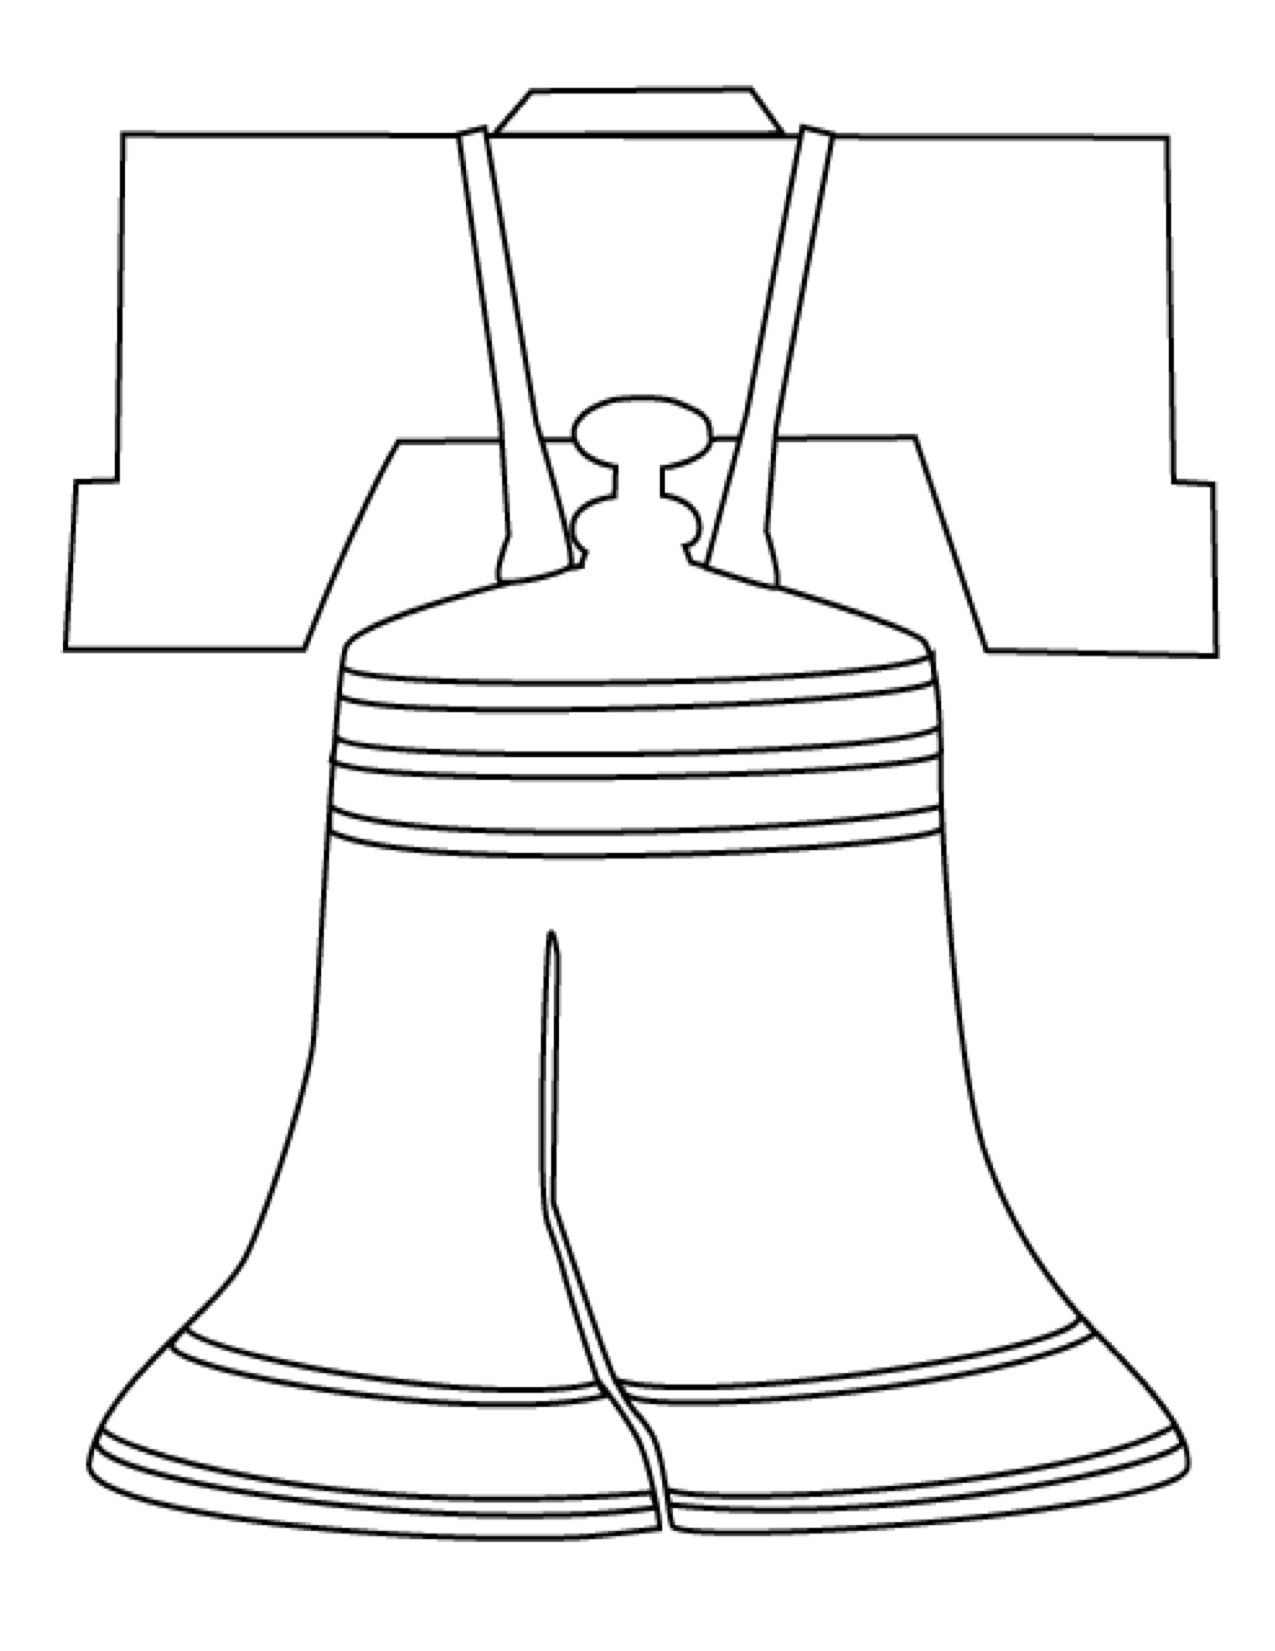 School drawing at getdrawings. Bell clipart easy